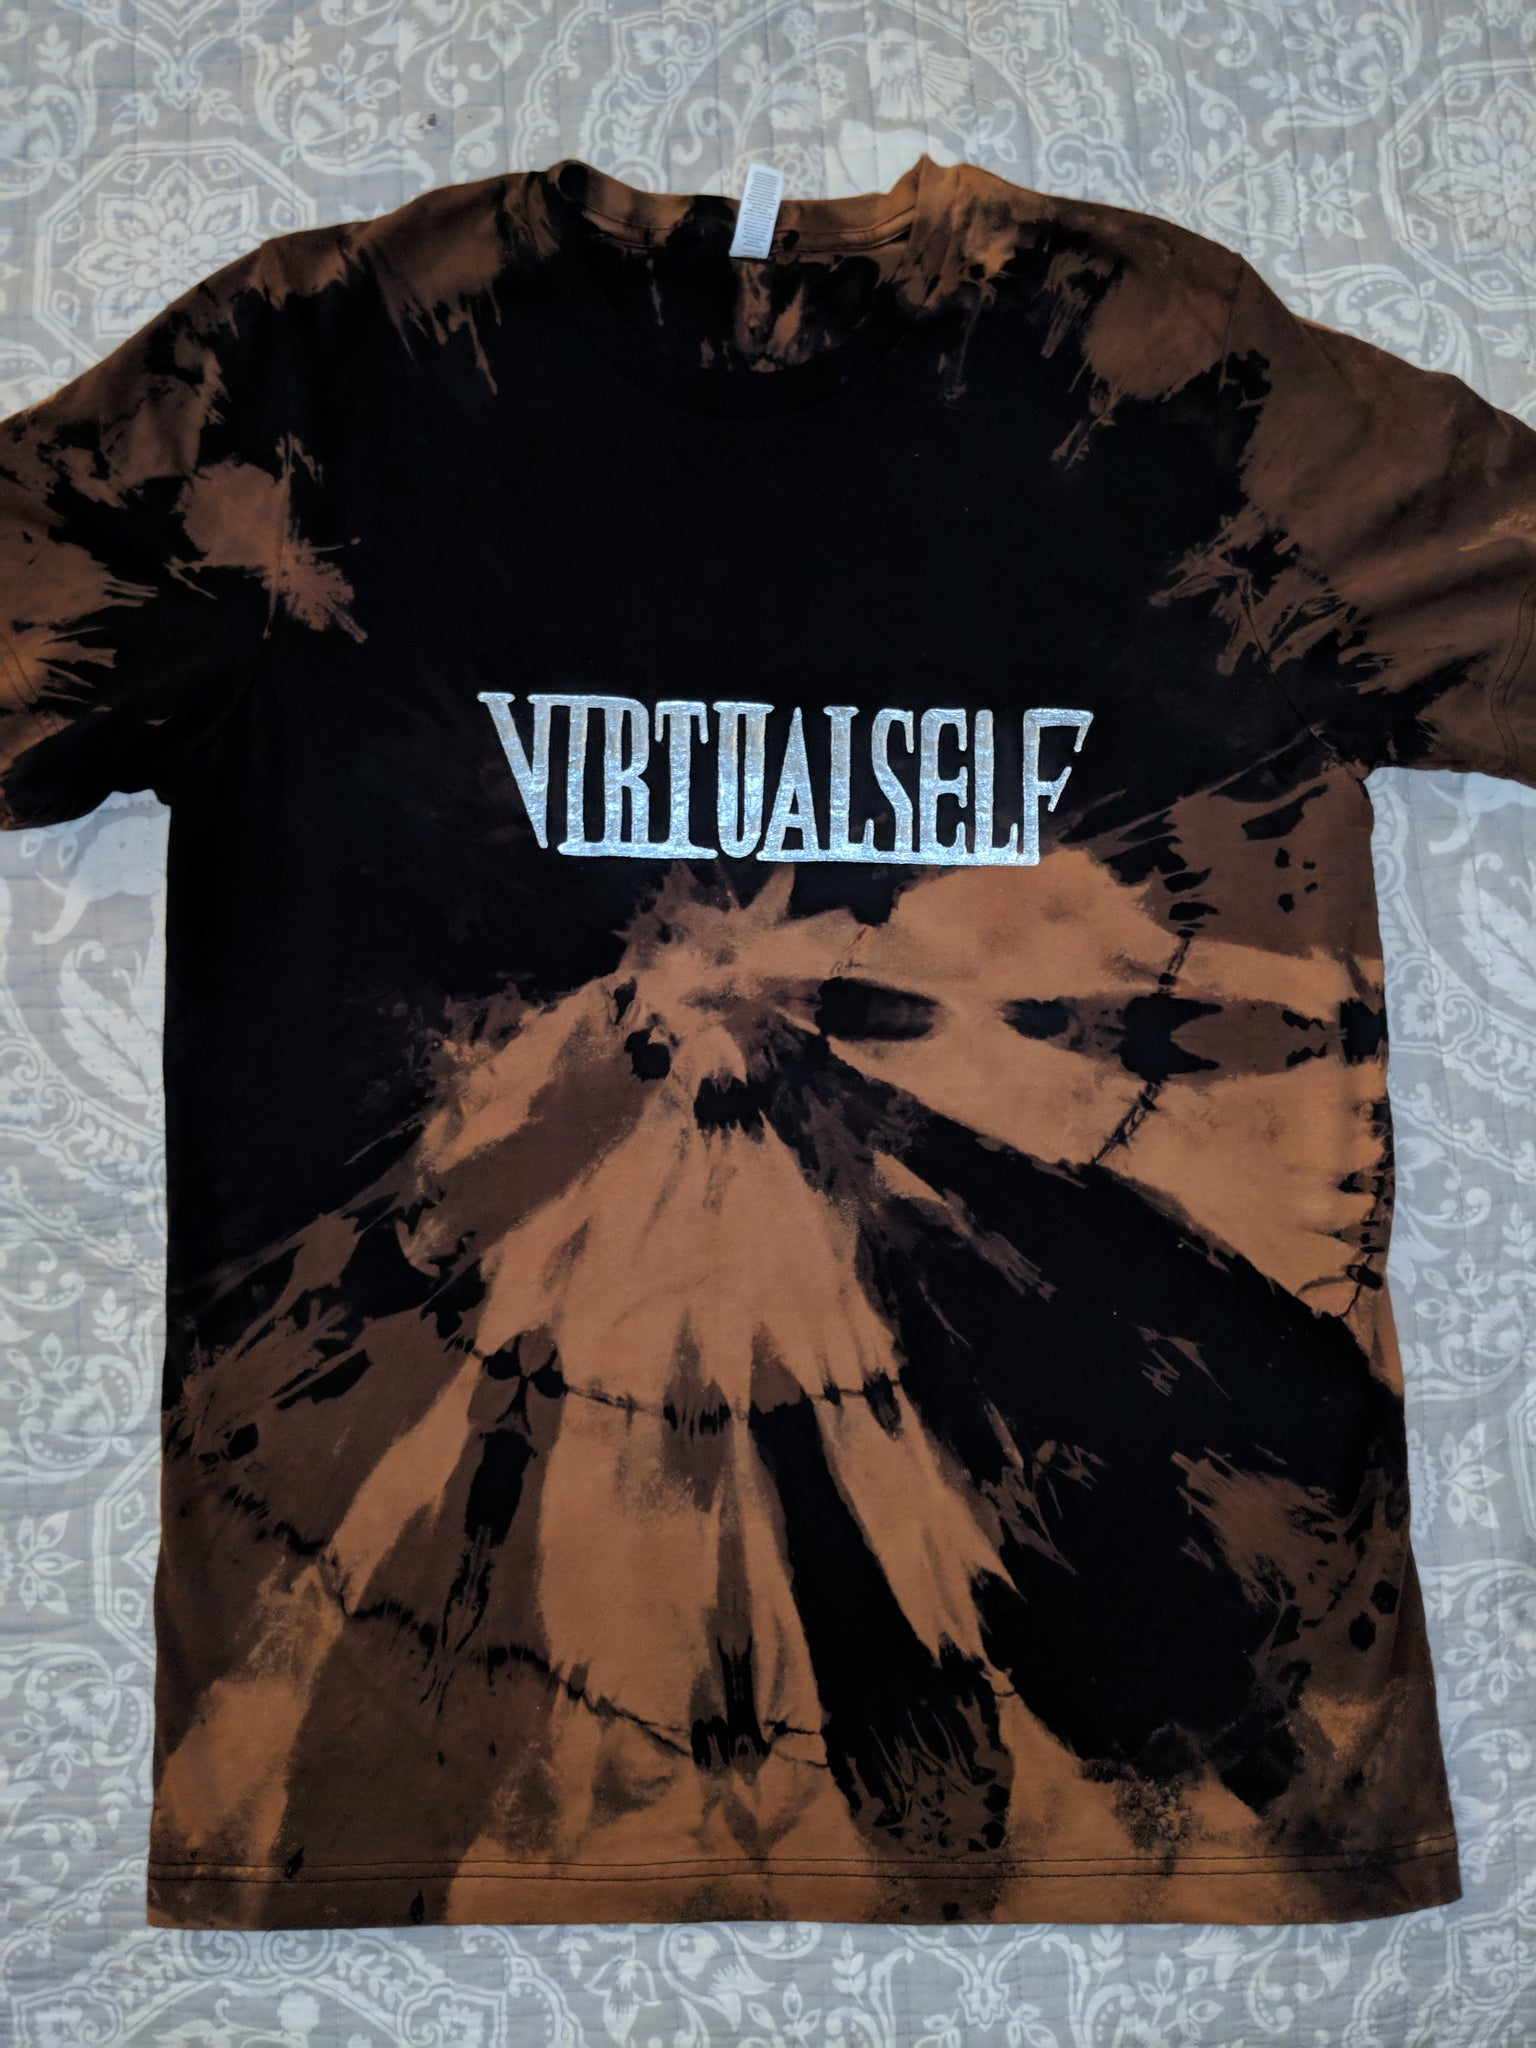 Virtual Self- Bleached Shirt